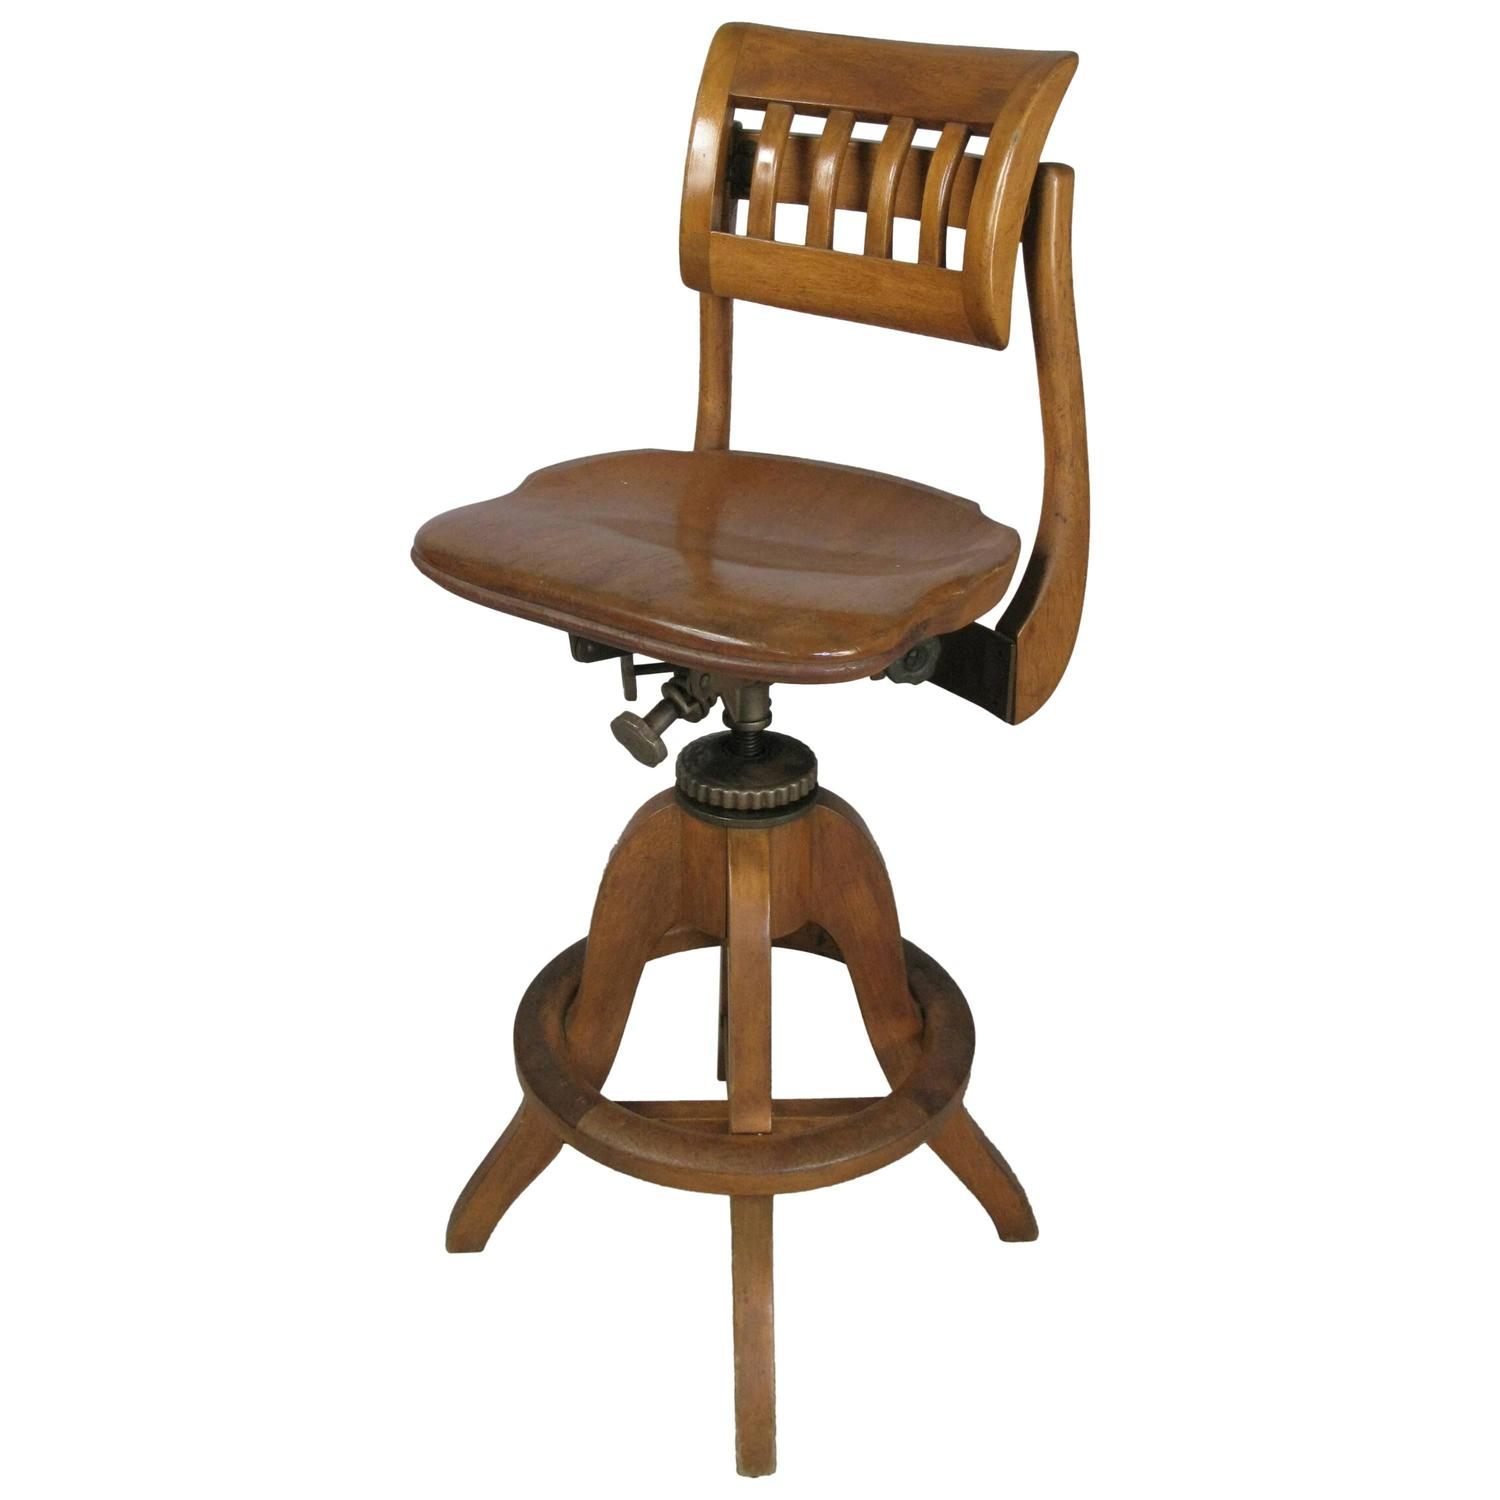 Adjustable Drafting Chair Antique Industrial Adjustable Drafting Stool By Sikes At